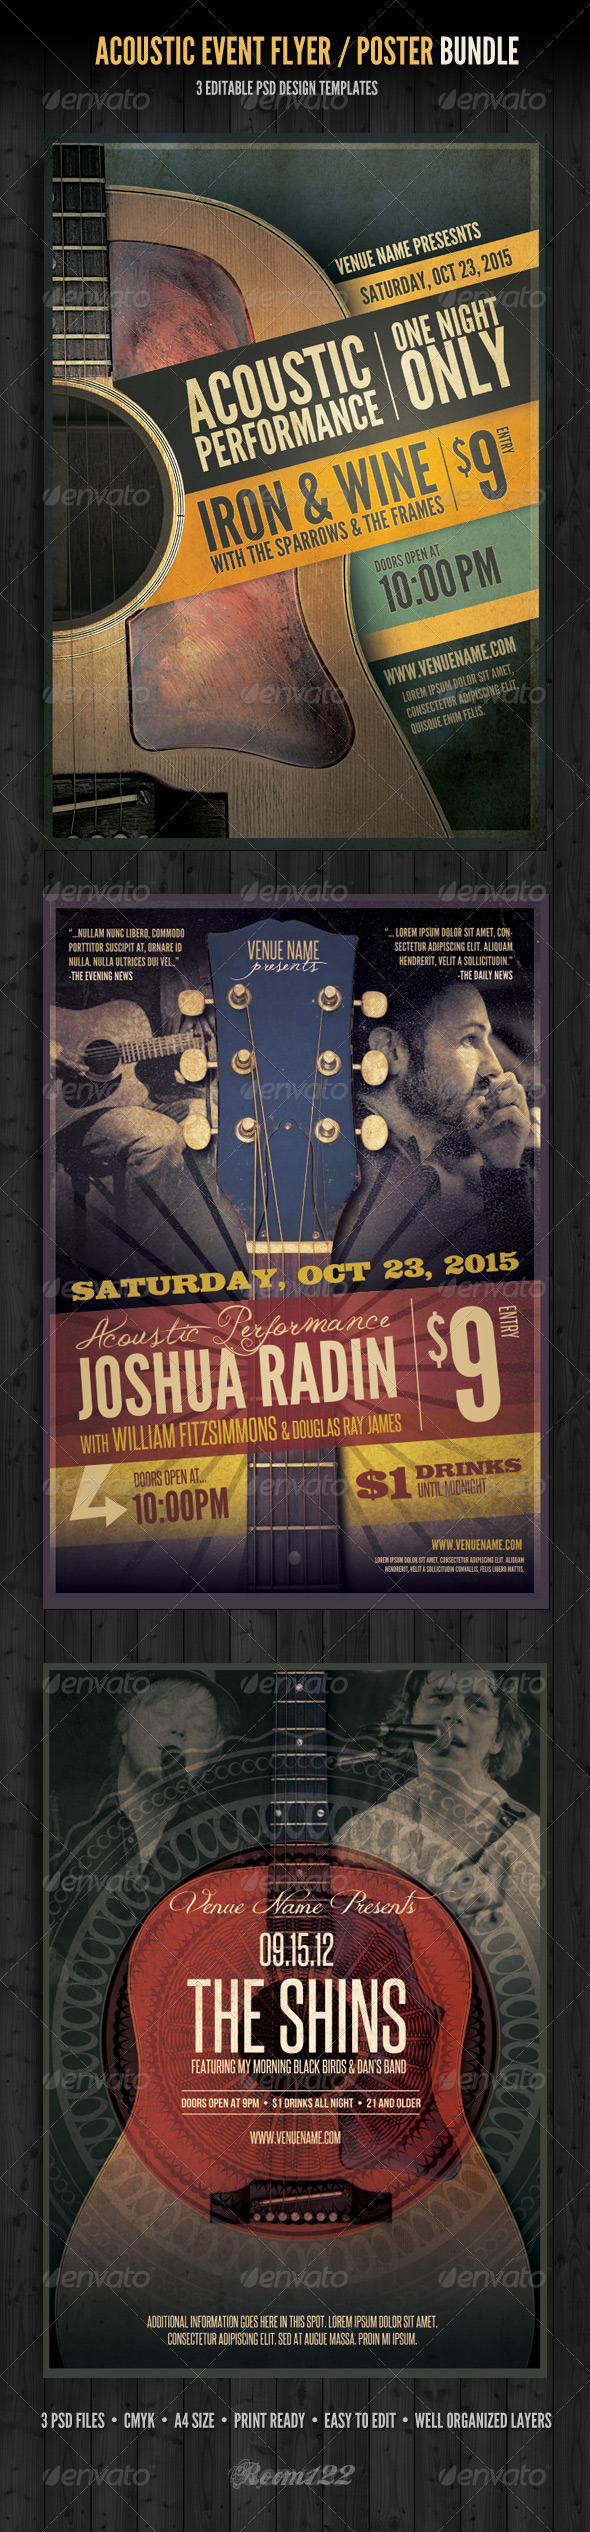 Acoustic Event Flyer/Poster Template Bundle - Concerts Events